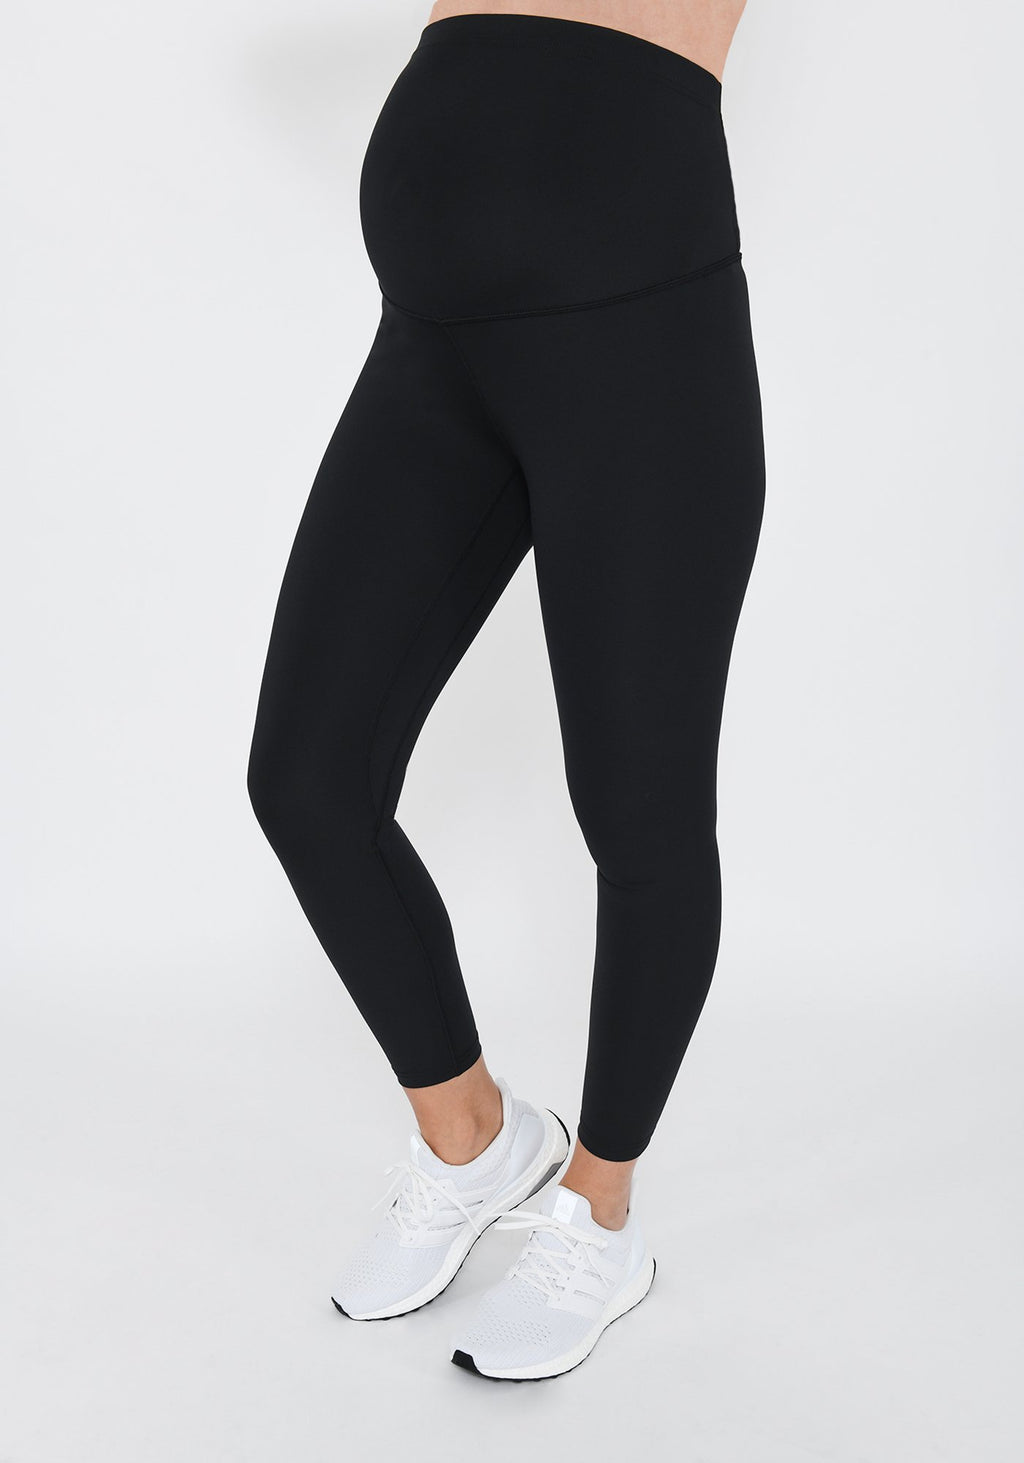 Focus Midnight Black 7/8 Maternity Sports Leggings